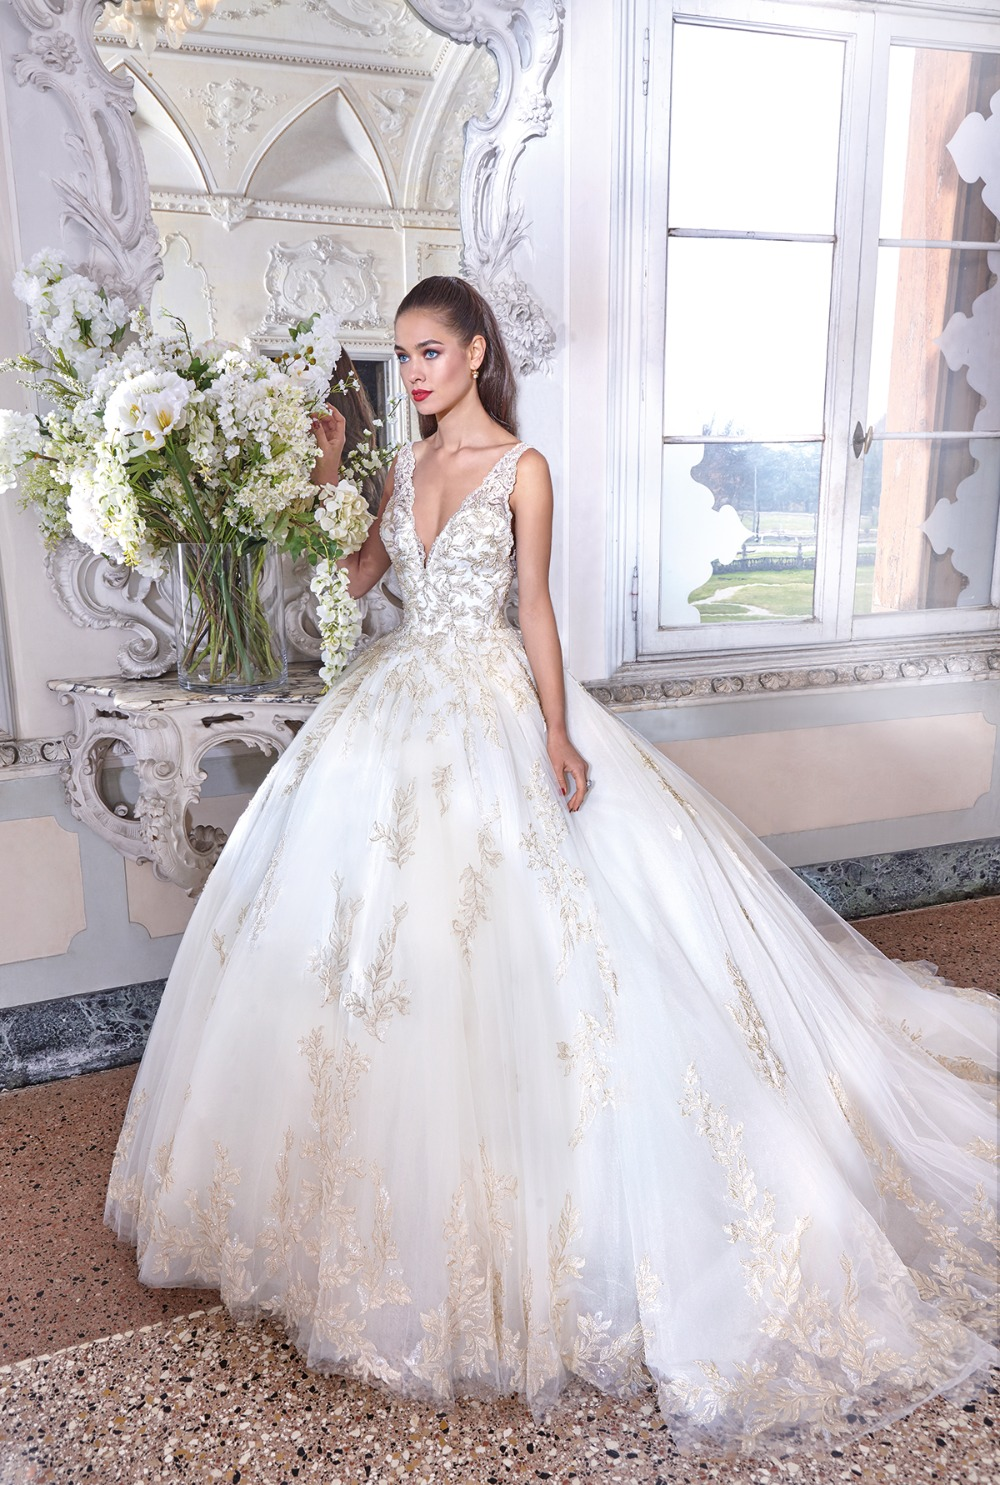 gold and tulle princess gown by Demetrios Platinum 19